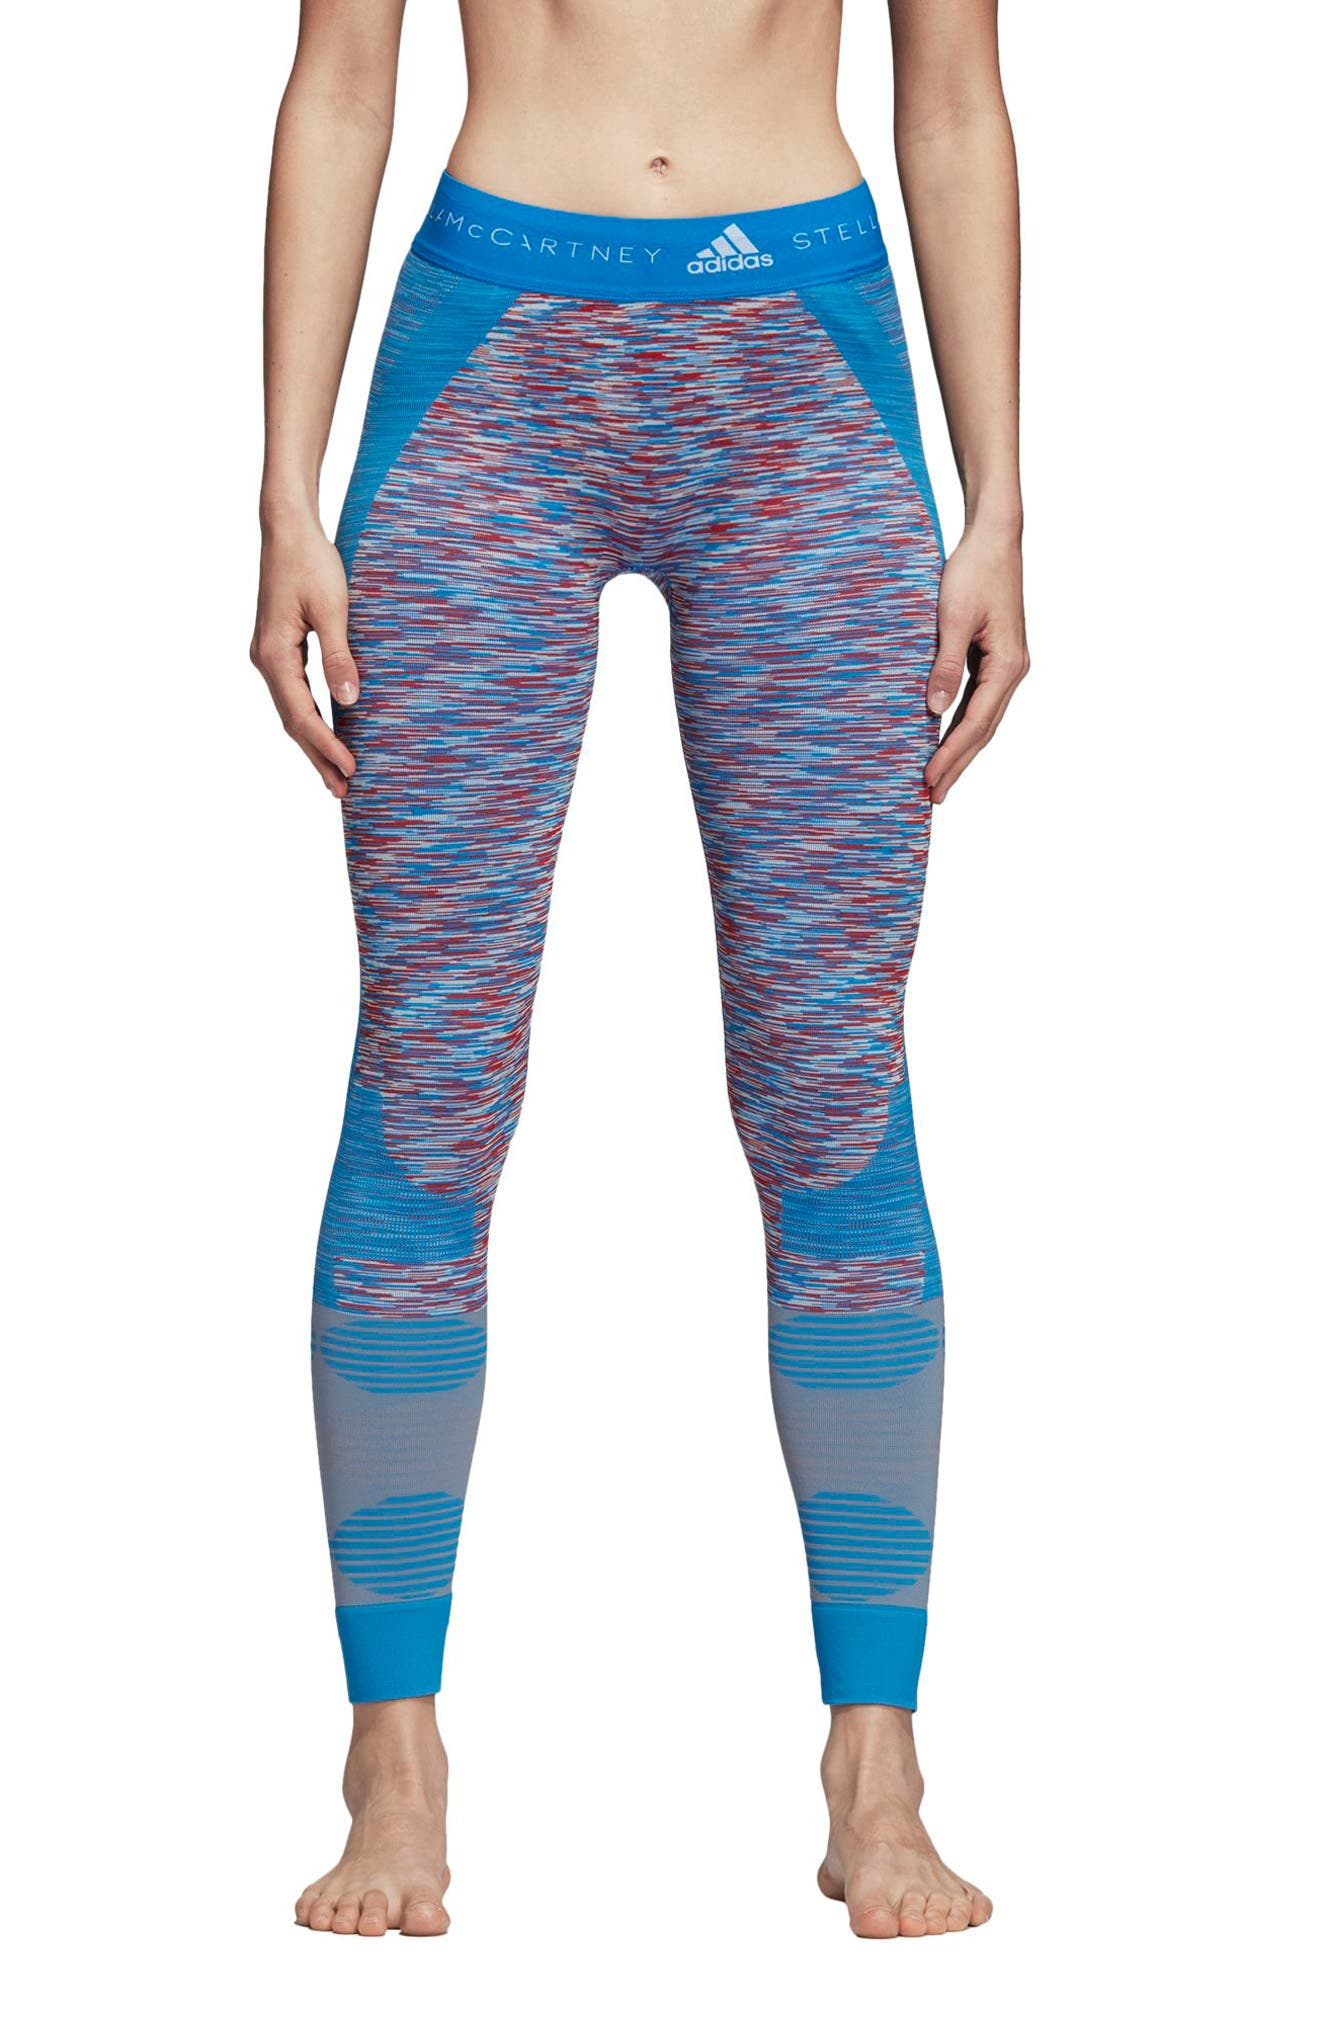 Yoga Seamless Space Dye Leggings,                             Main thumbnail 1, color,                             400